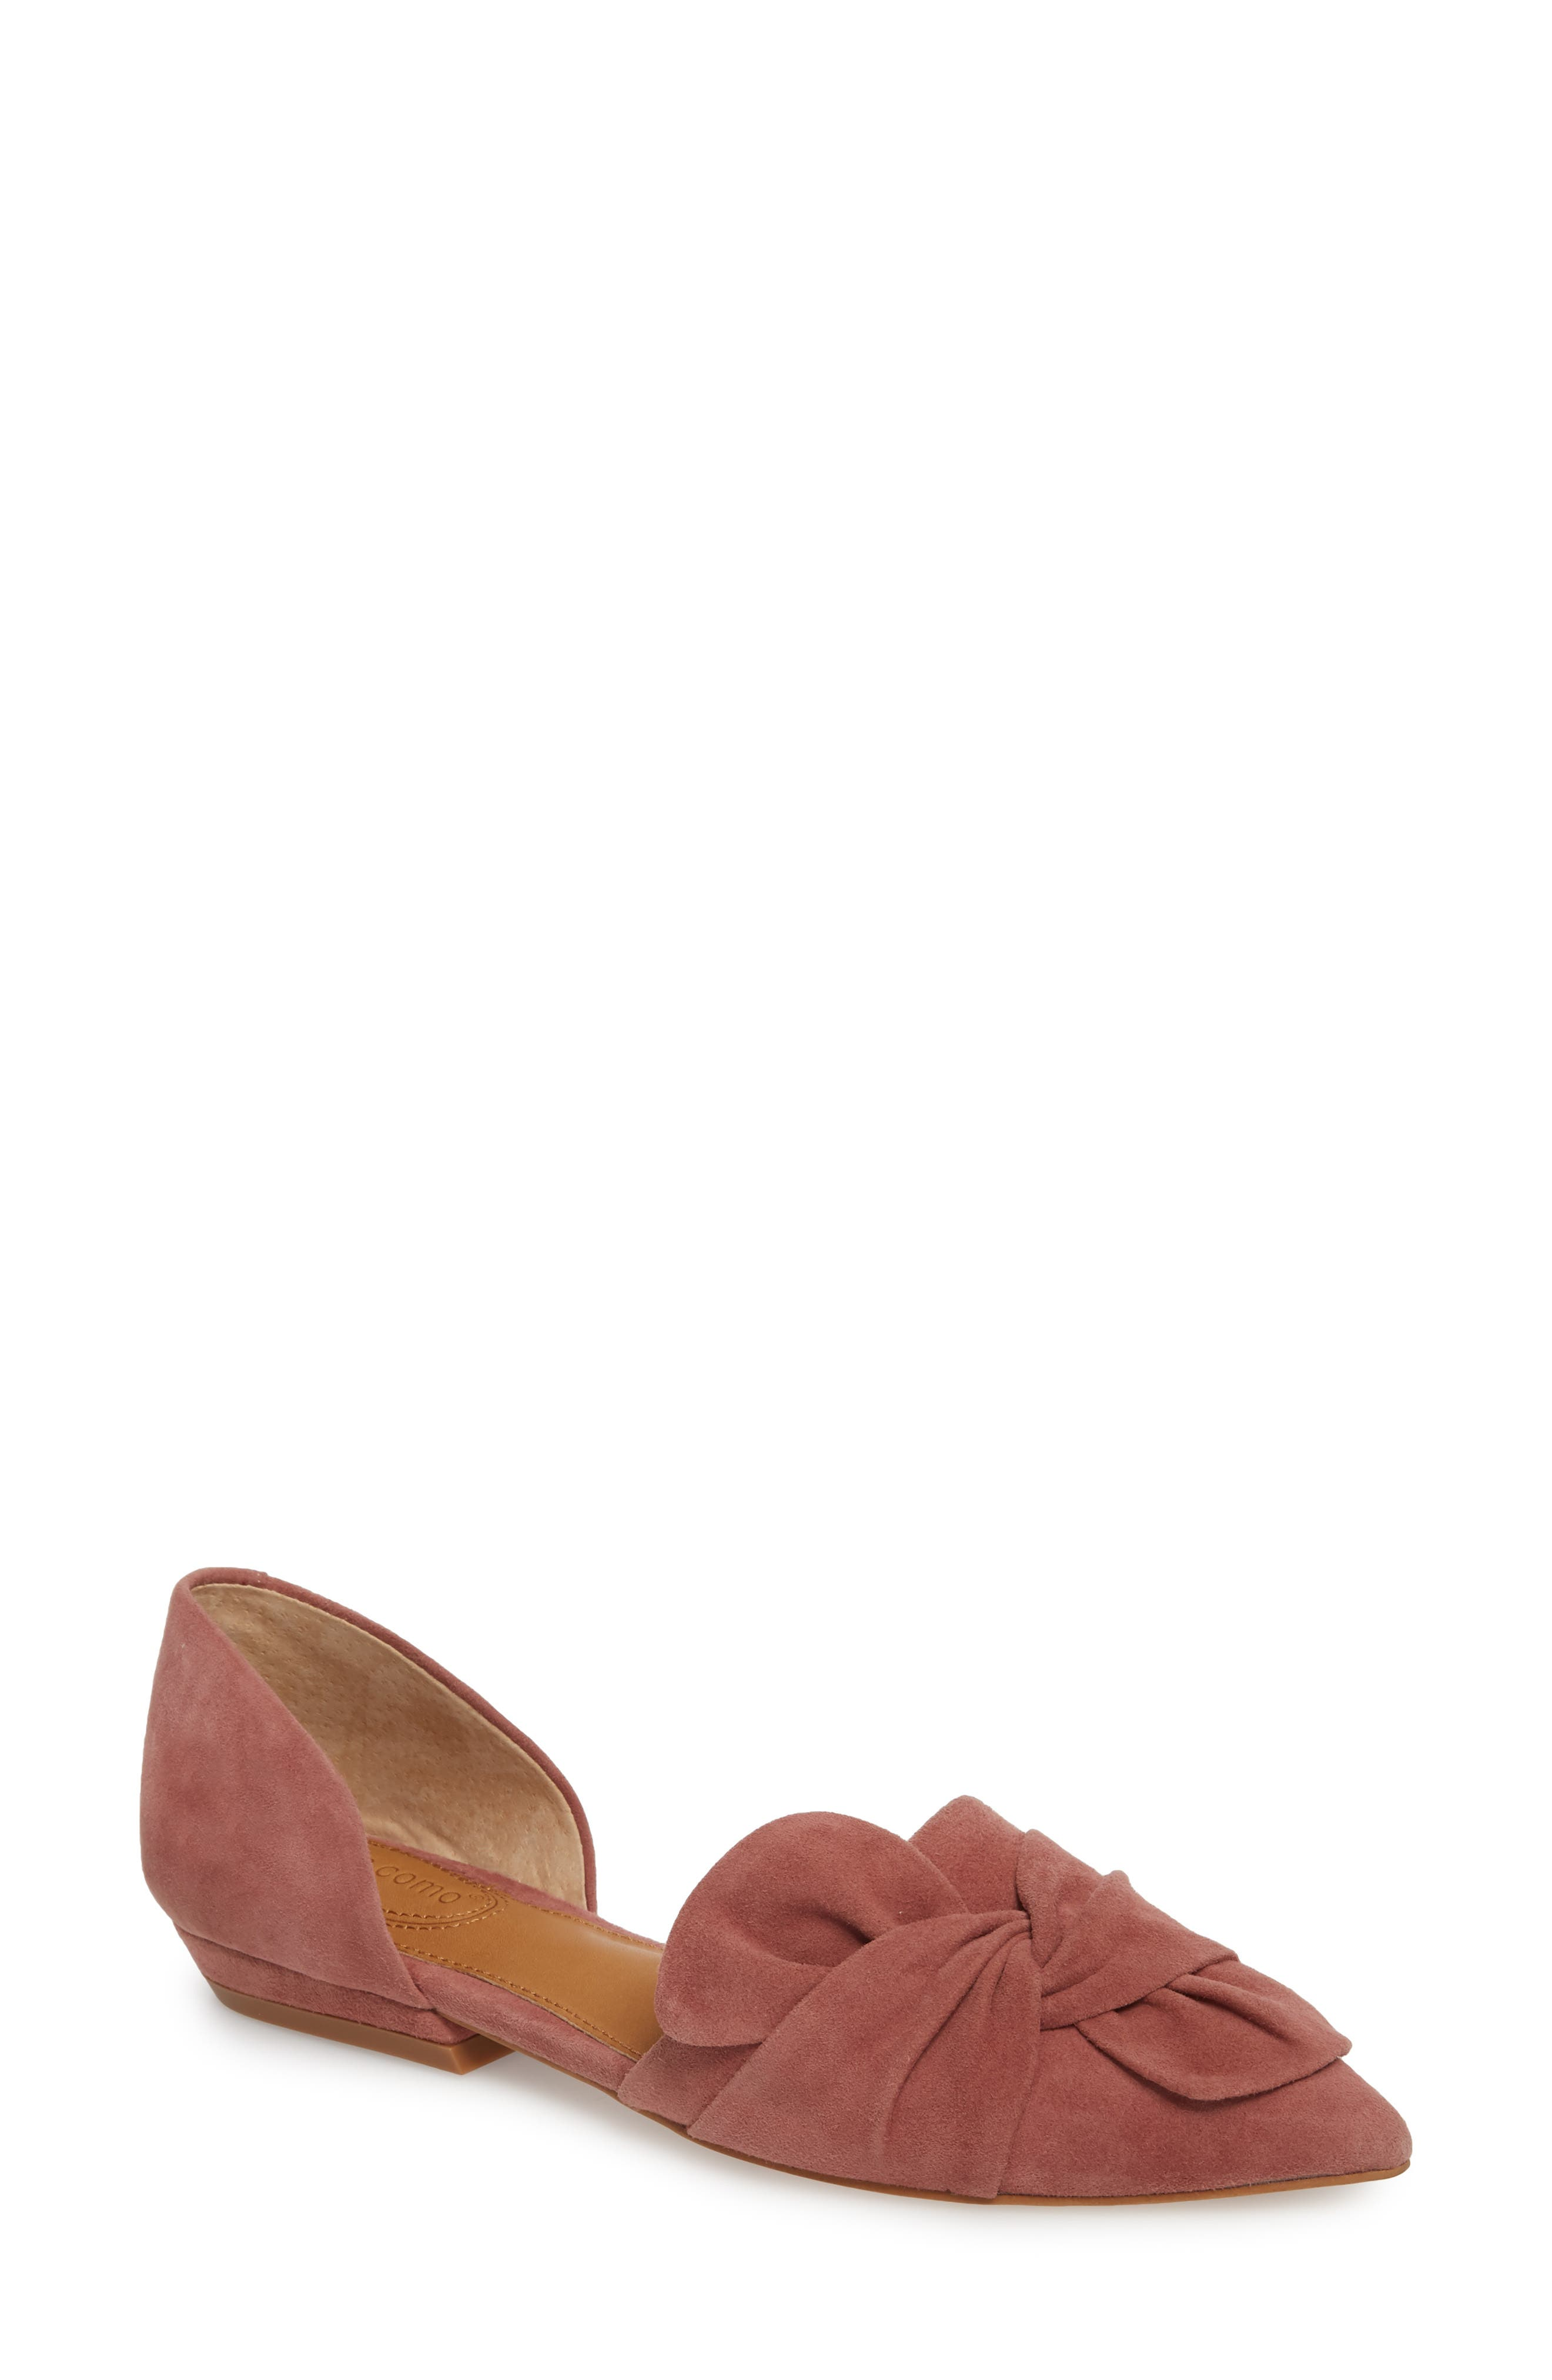 Mollie d'Orsay Flat,                         Main,                         color, OLD ROSE SUEDE